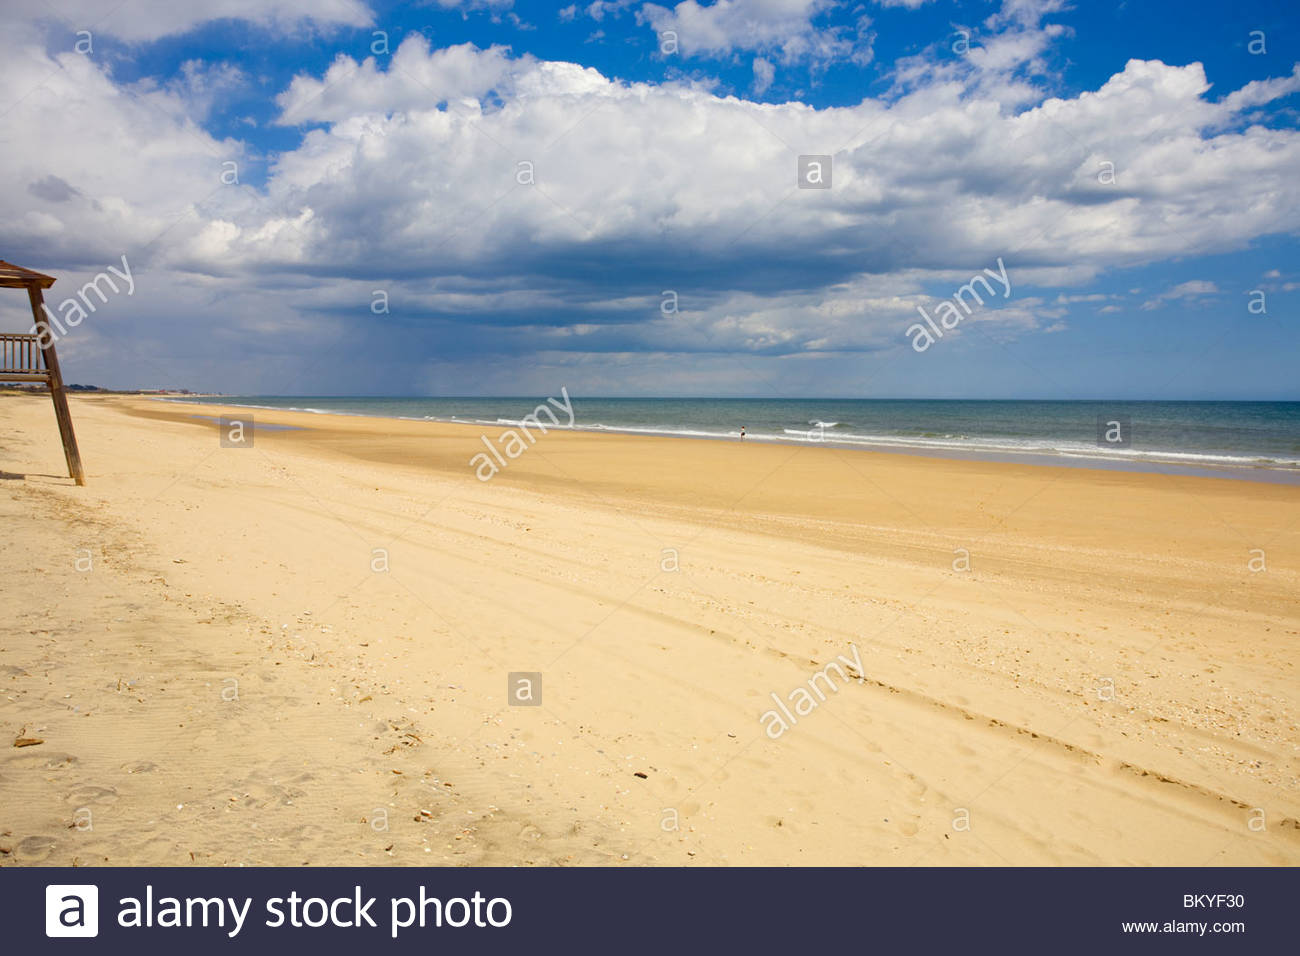 Beach at Isla Cristina, Playa del Hoyo, Province Huelva, Andalucia, Spain - Stock Image